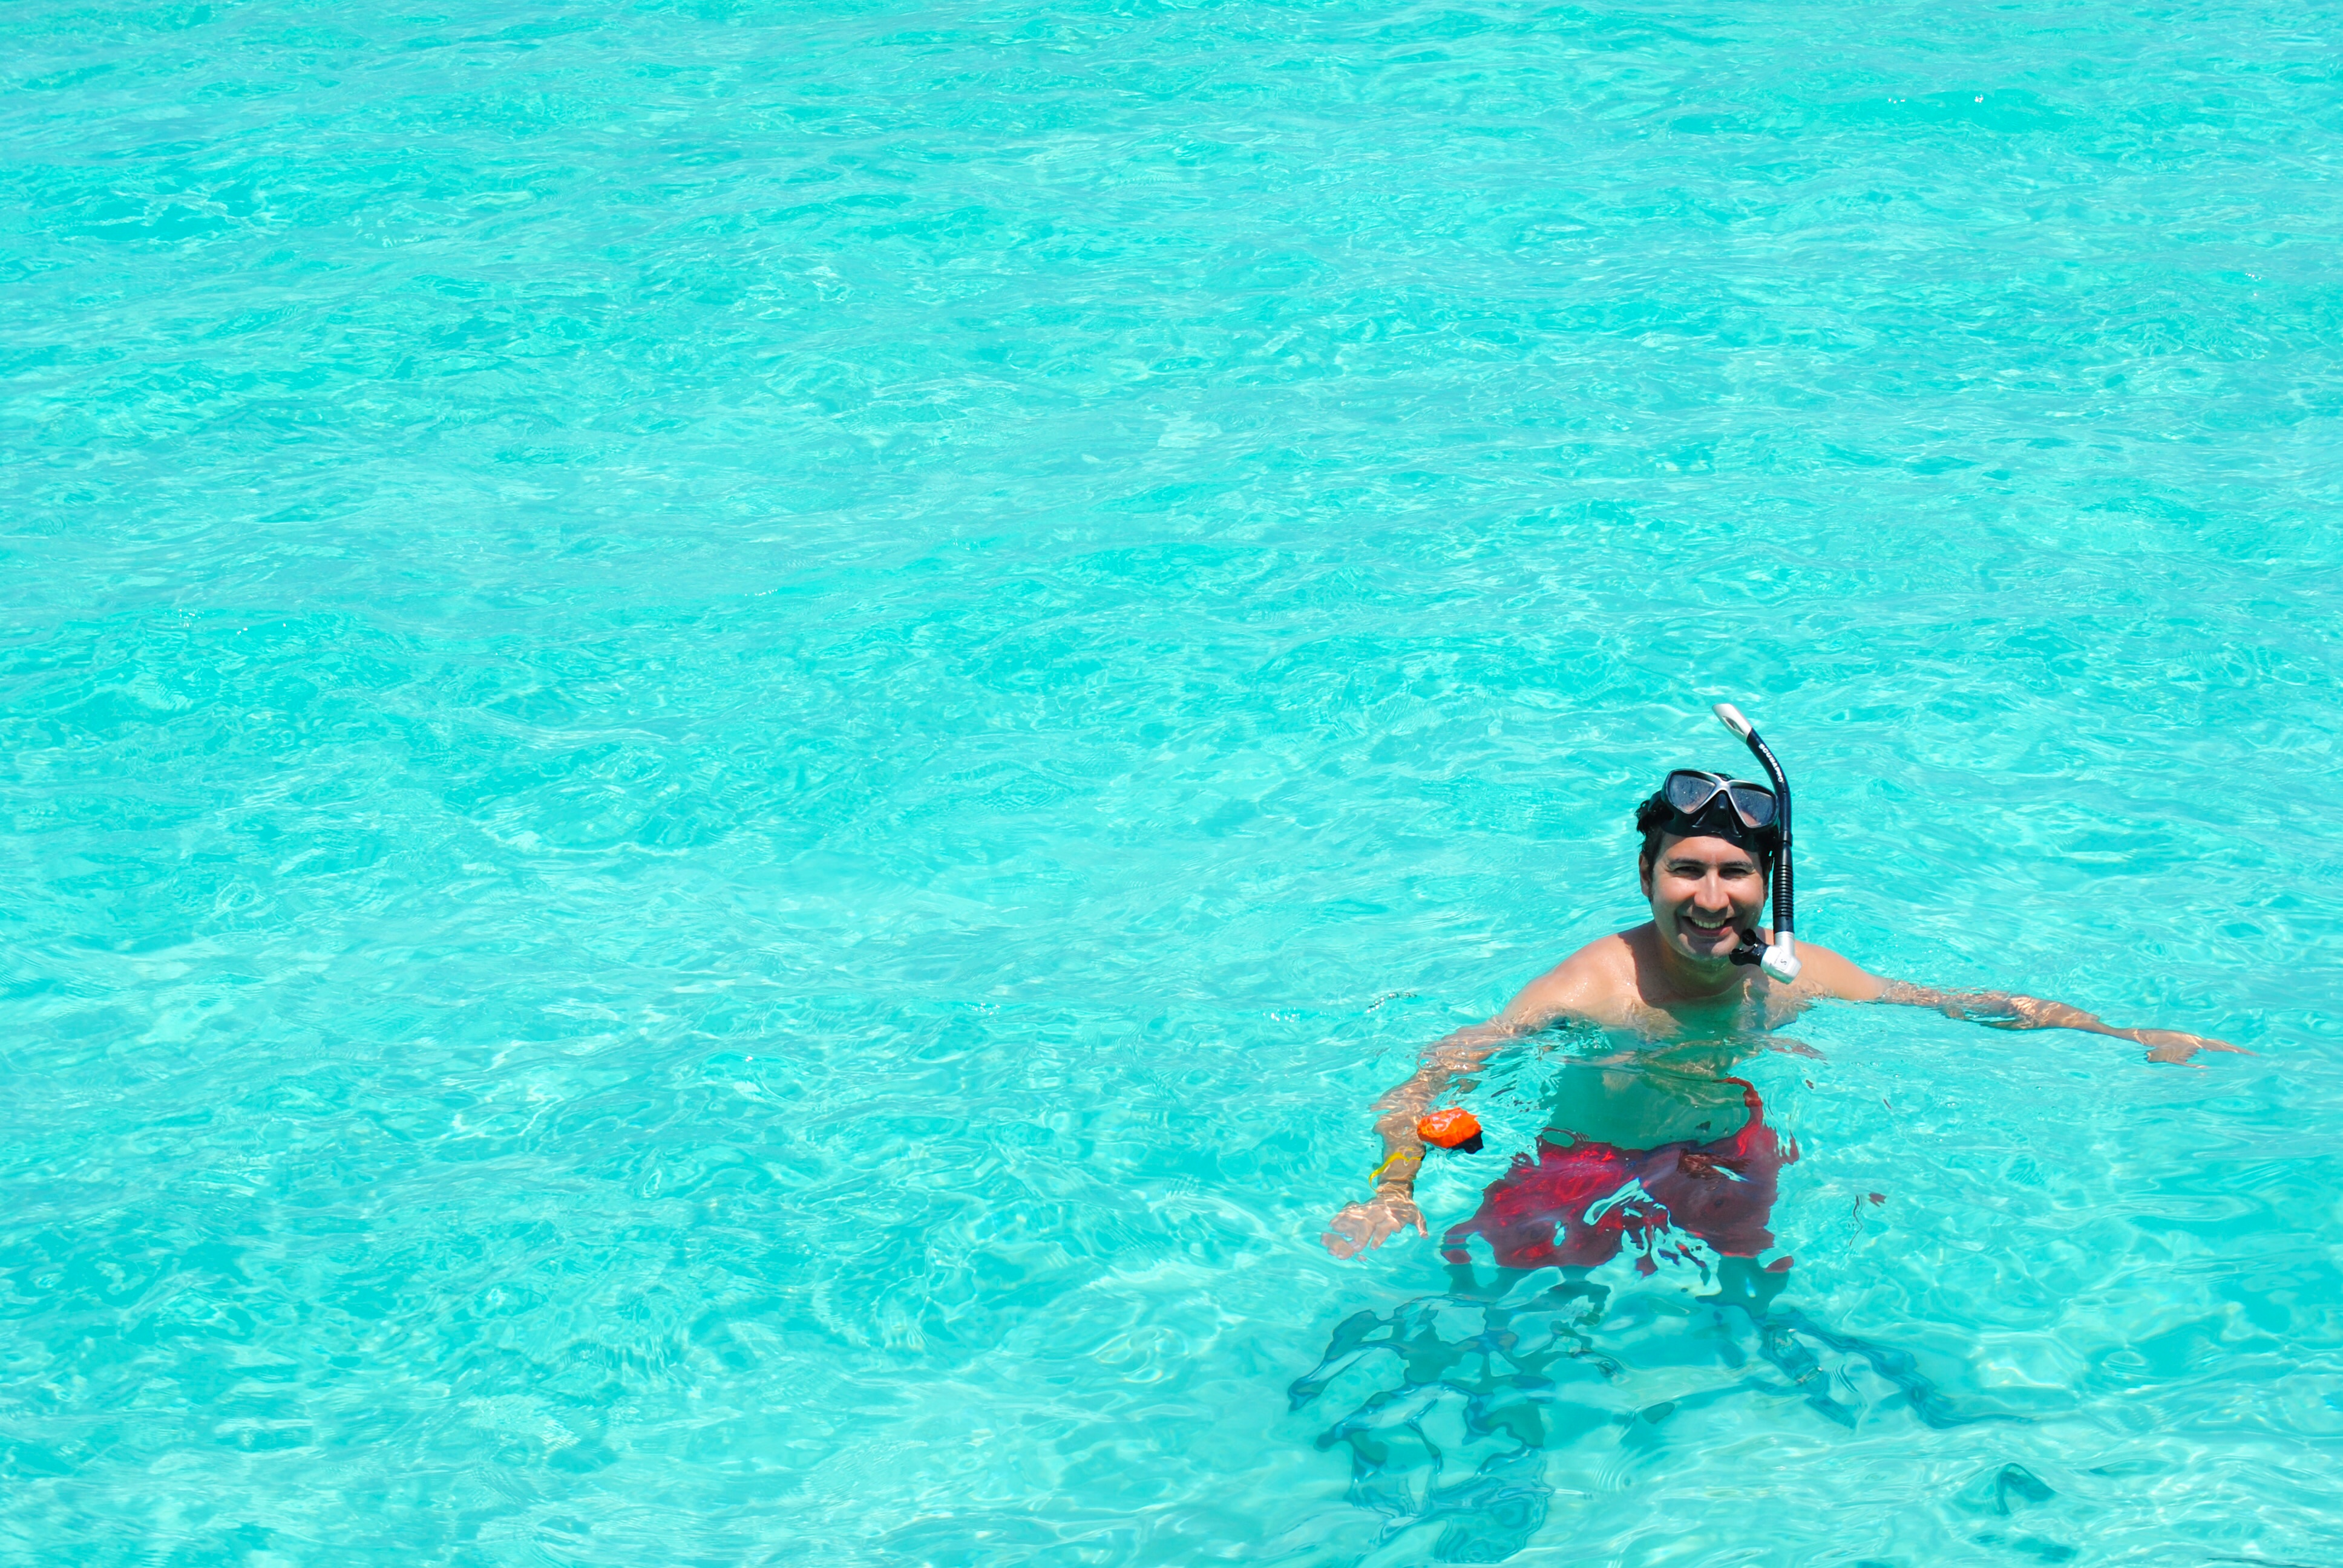 Swimming in the Maldives